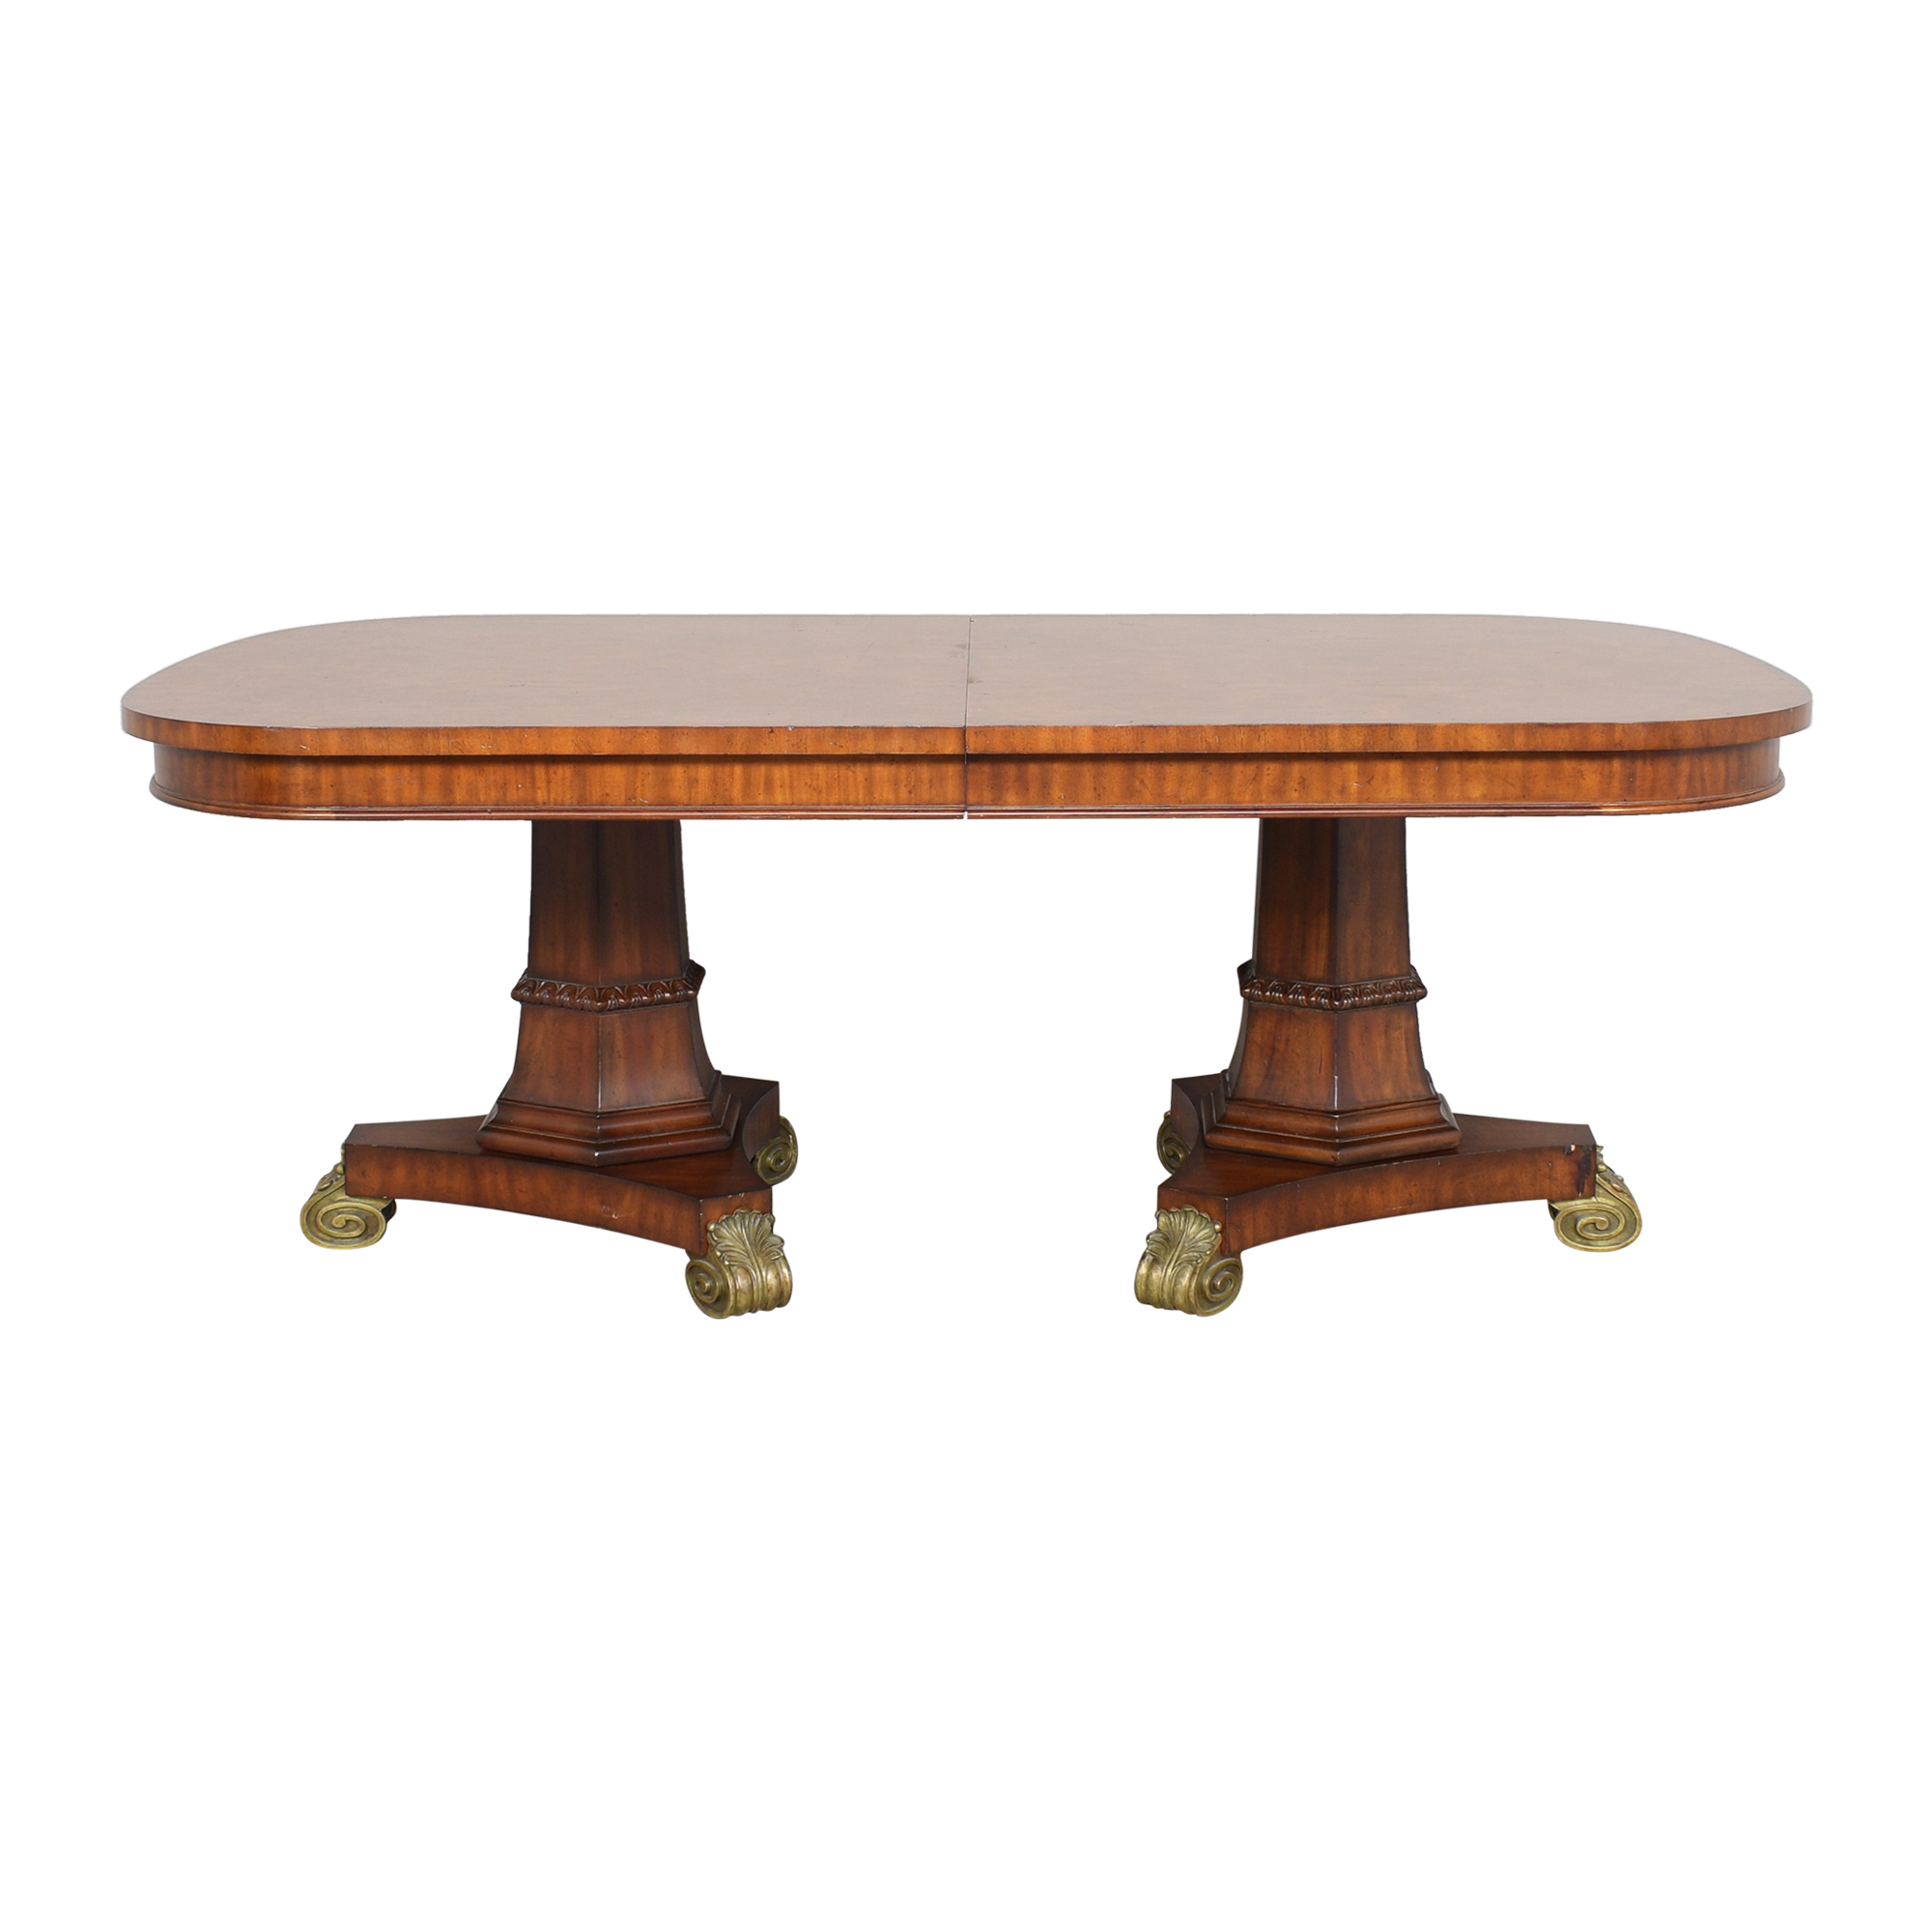 Thomasville Thomasville Ernest Hemingway Dining Table coupon